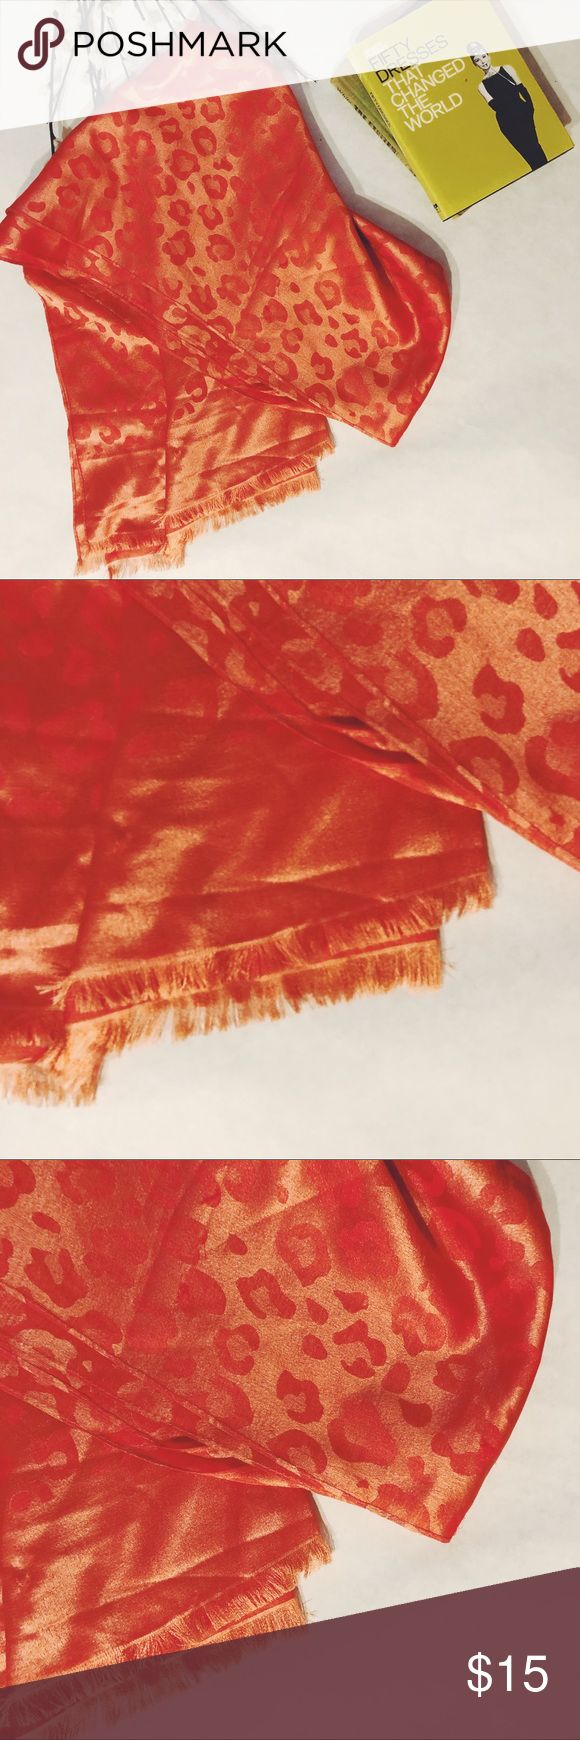 Silky coral scarf Tonal leopard pattern Accessories Scarves & Wraps